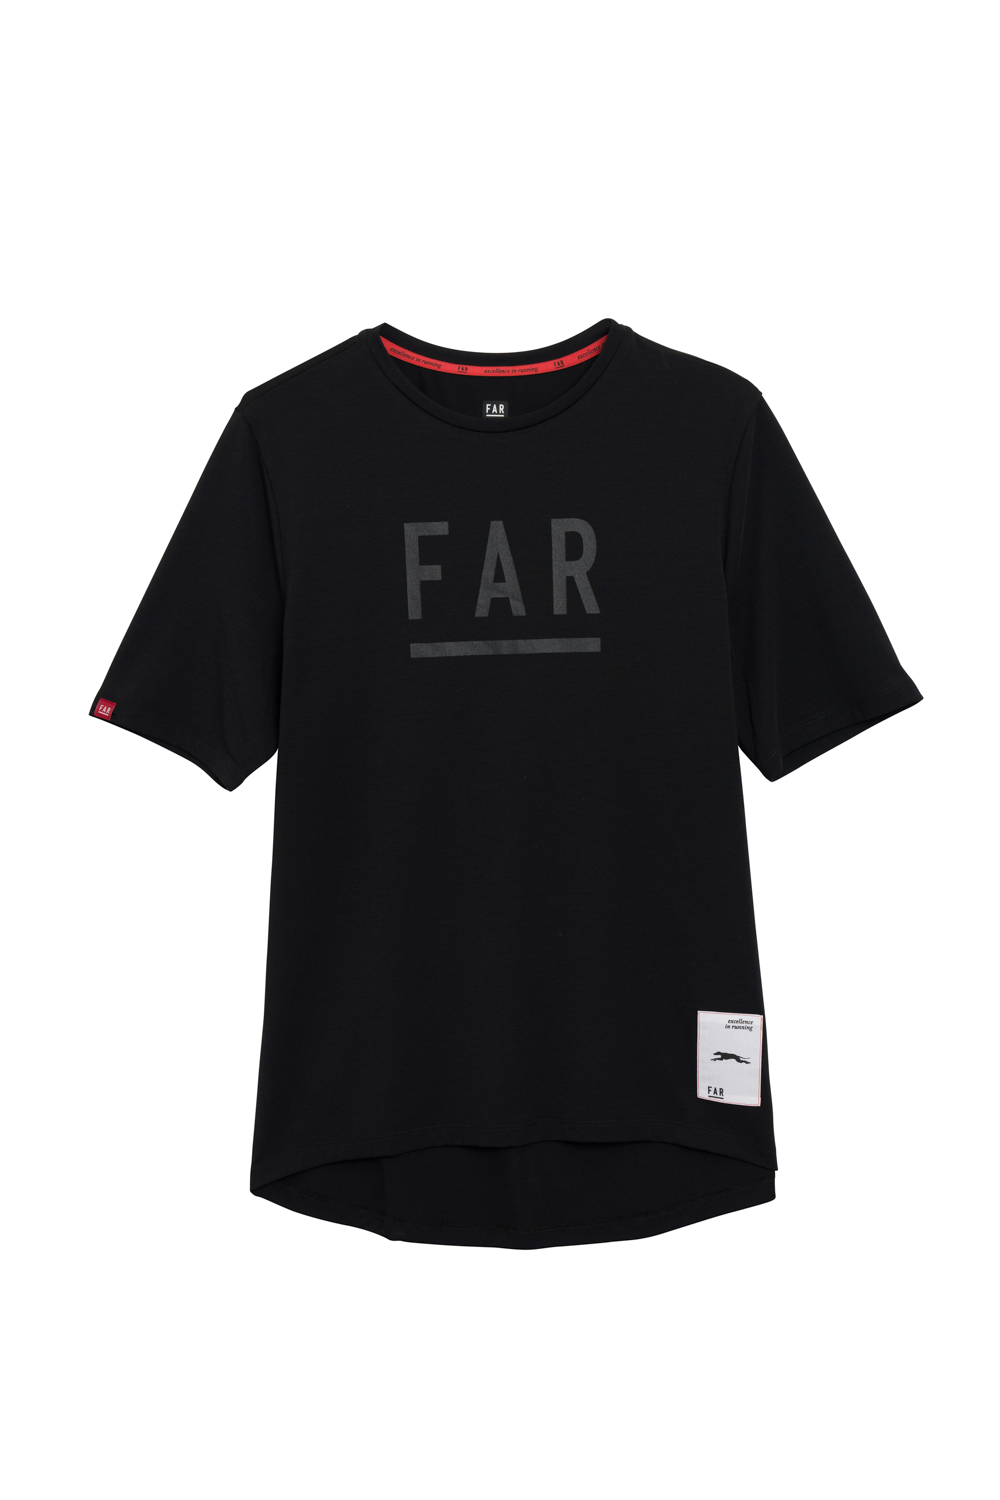 FAR Logo Street Cotton Tee  - Black